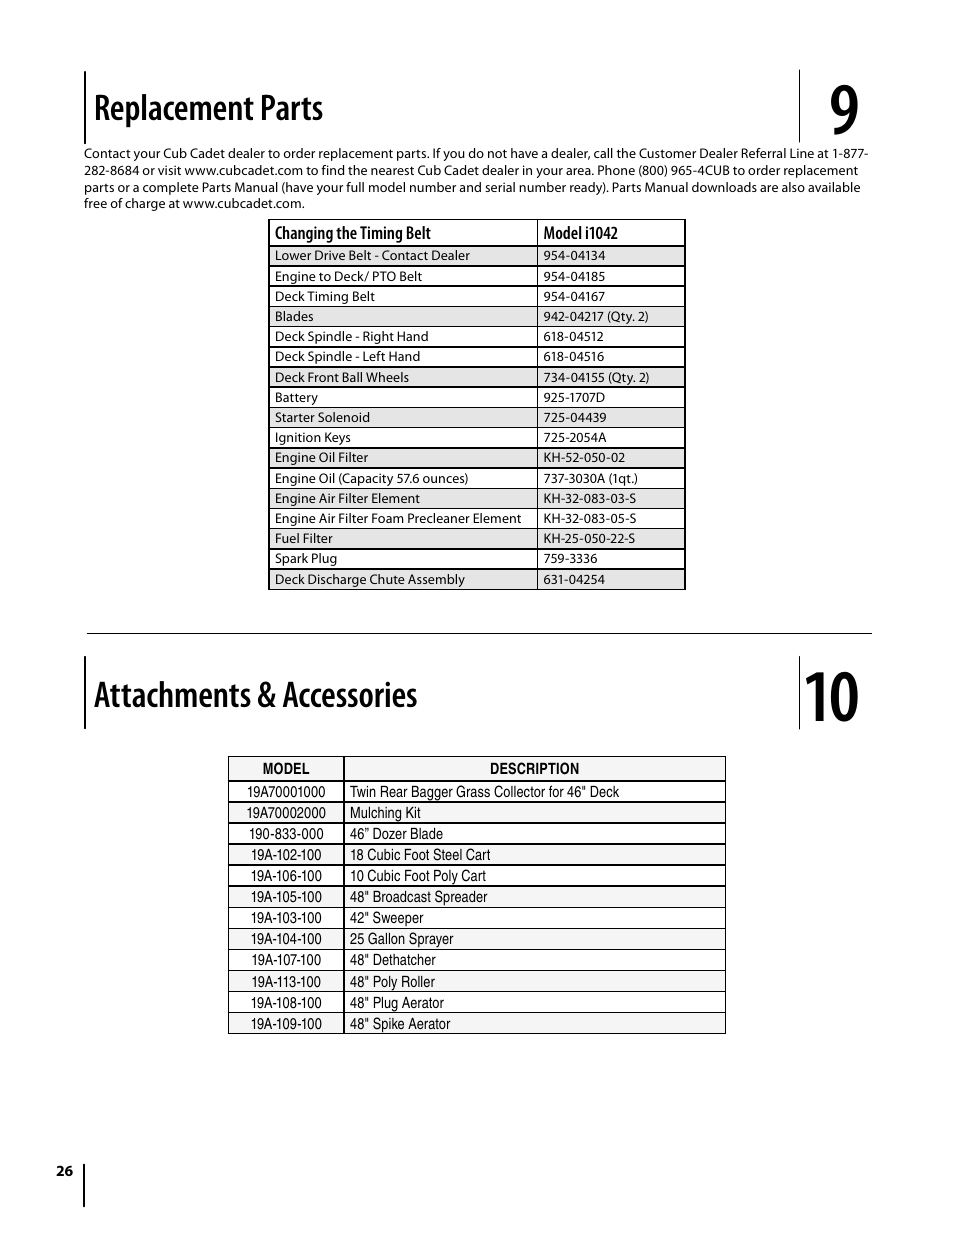 Replacement parts, Attachments & accessories | Cub Cadet I1042 User Manual  | Page 26 / 56